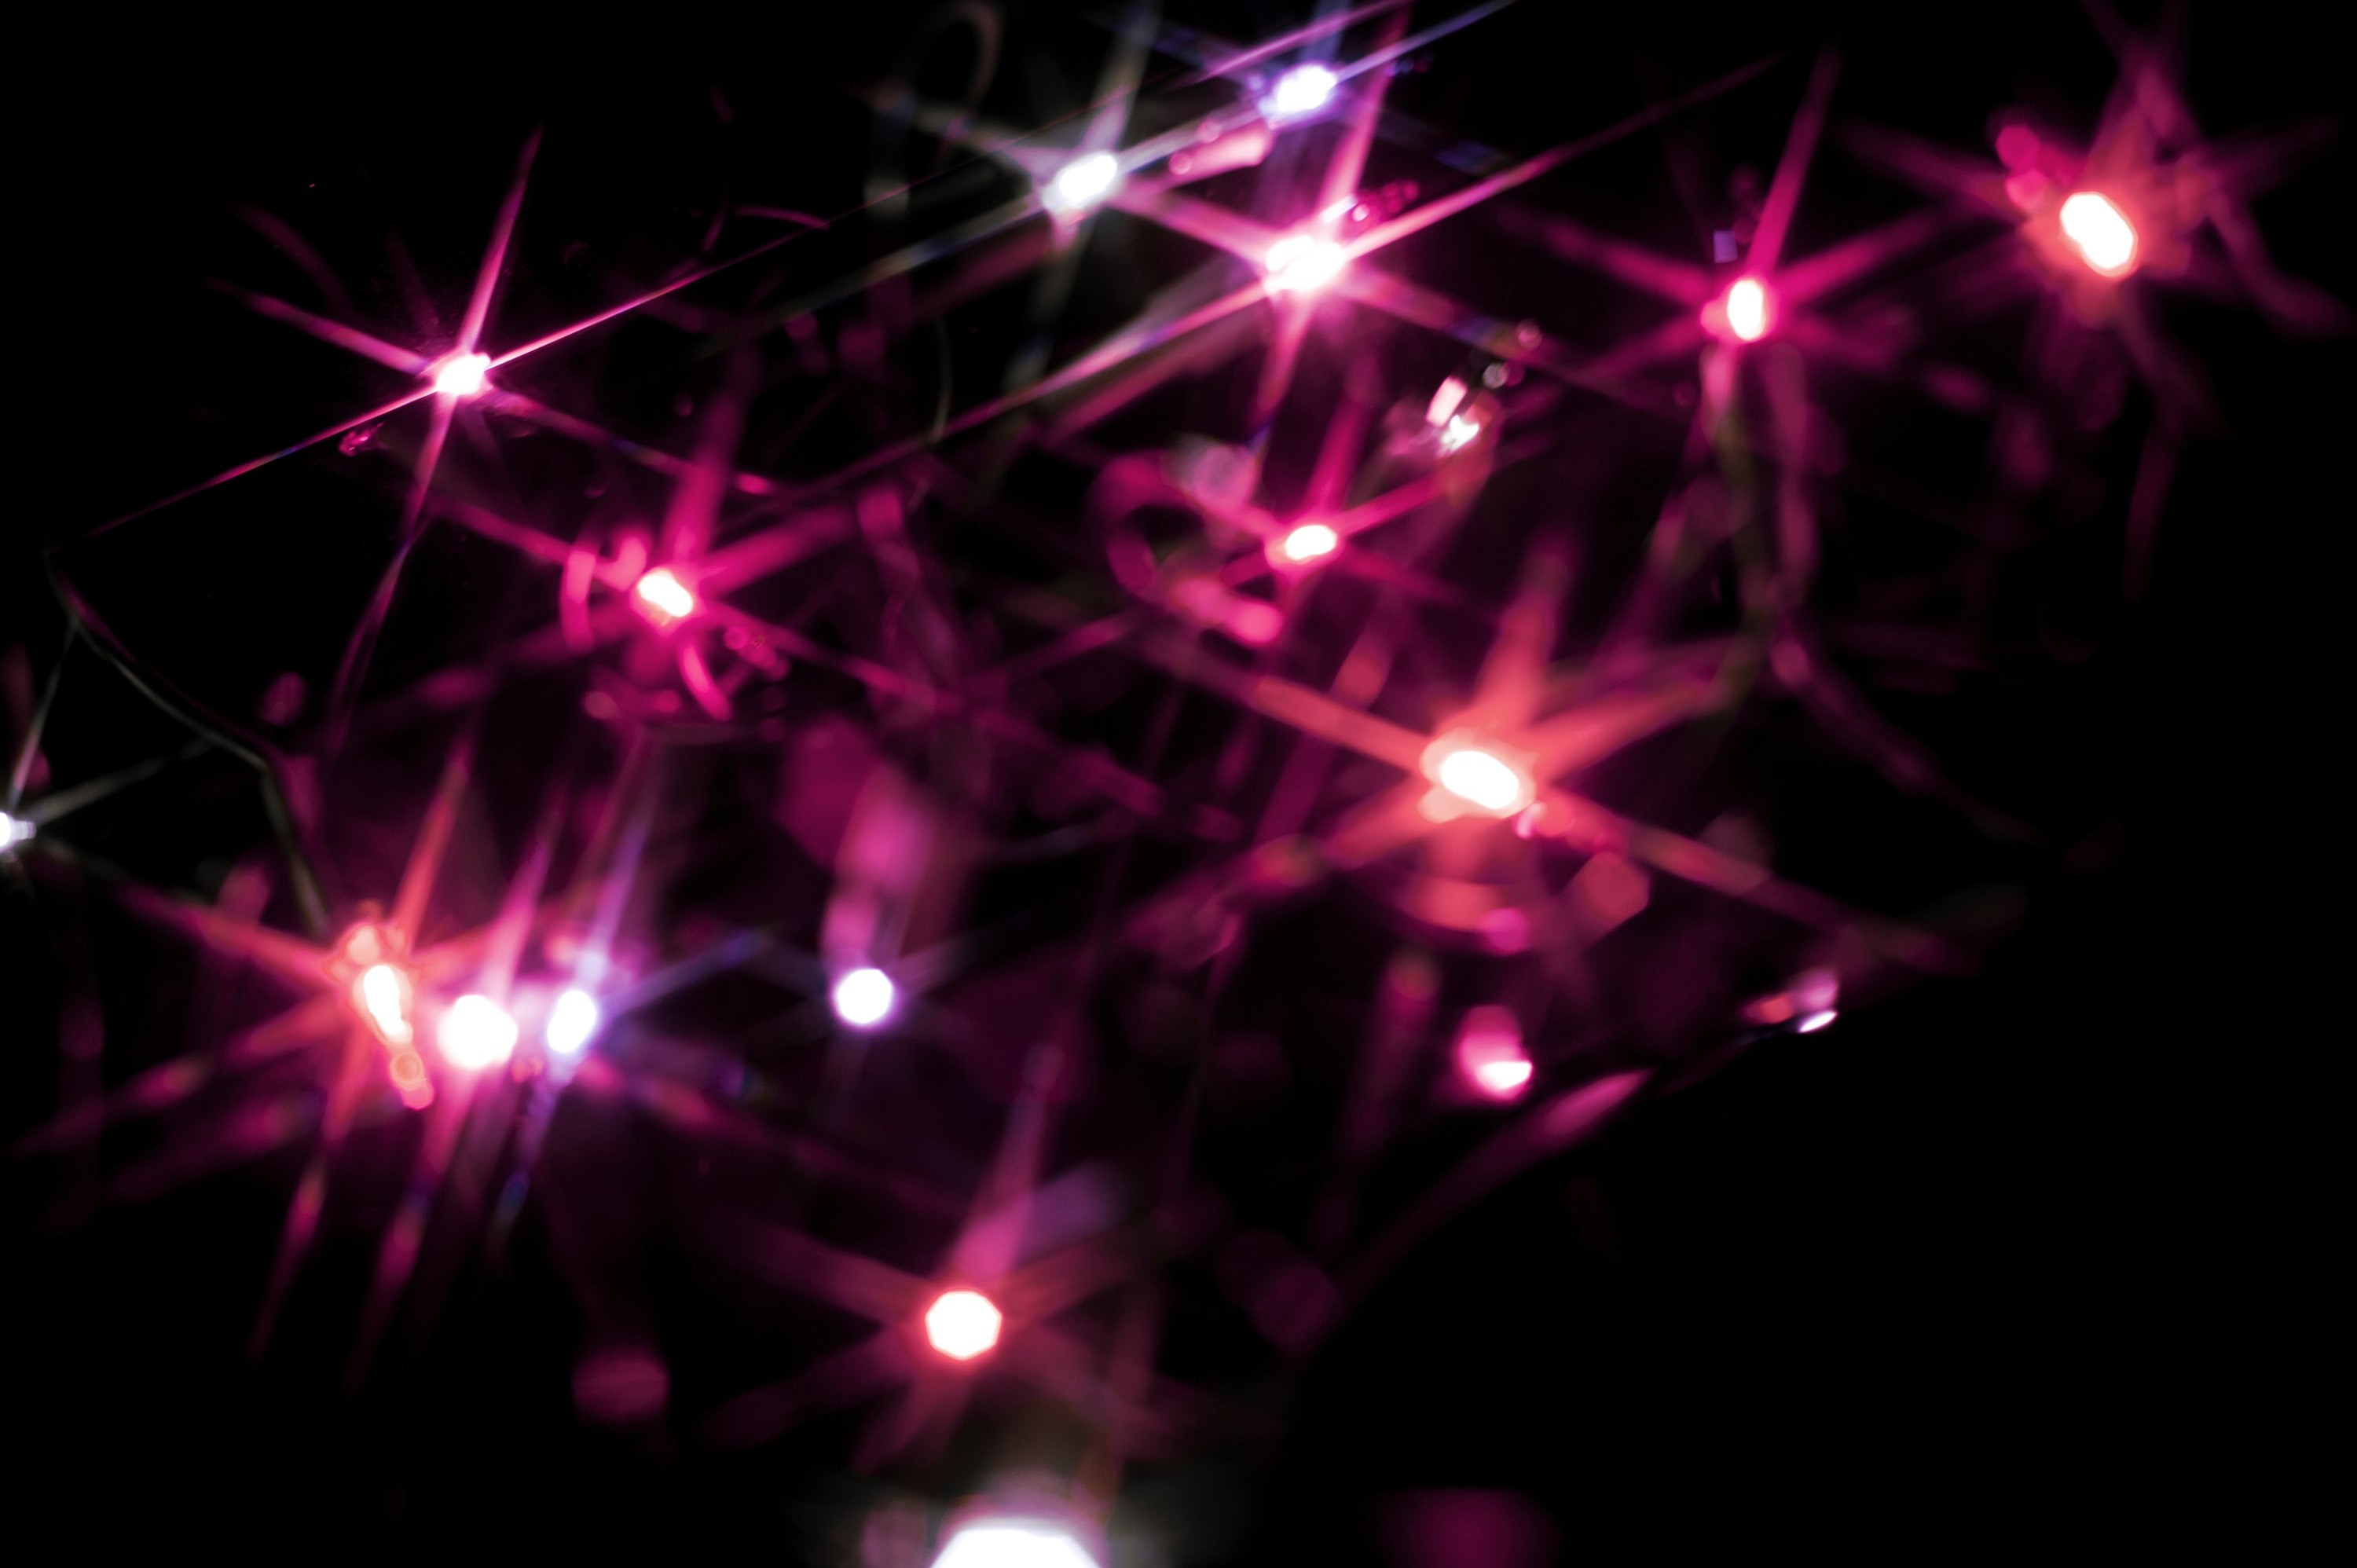 christmas background of colourful vivid pink starburst lights scattered in the darkness sparkling and glowing for - Sparkling Christmas Lights